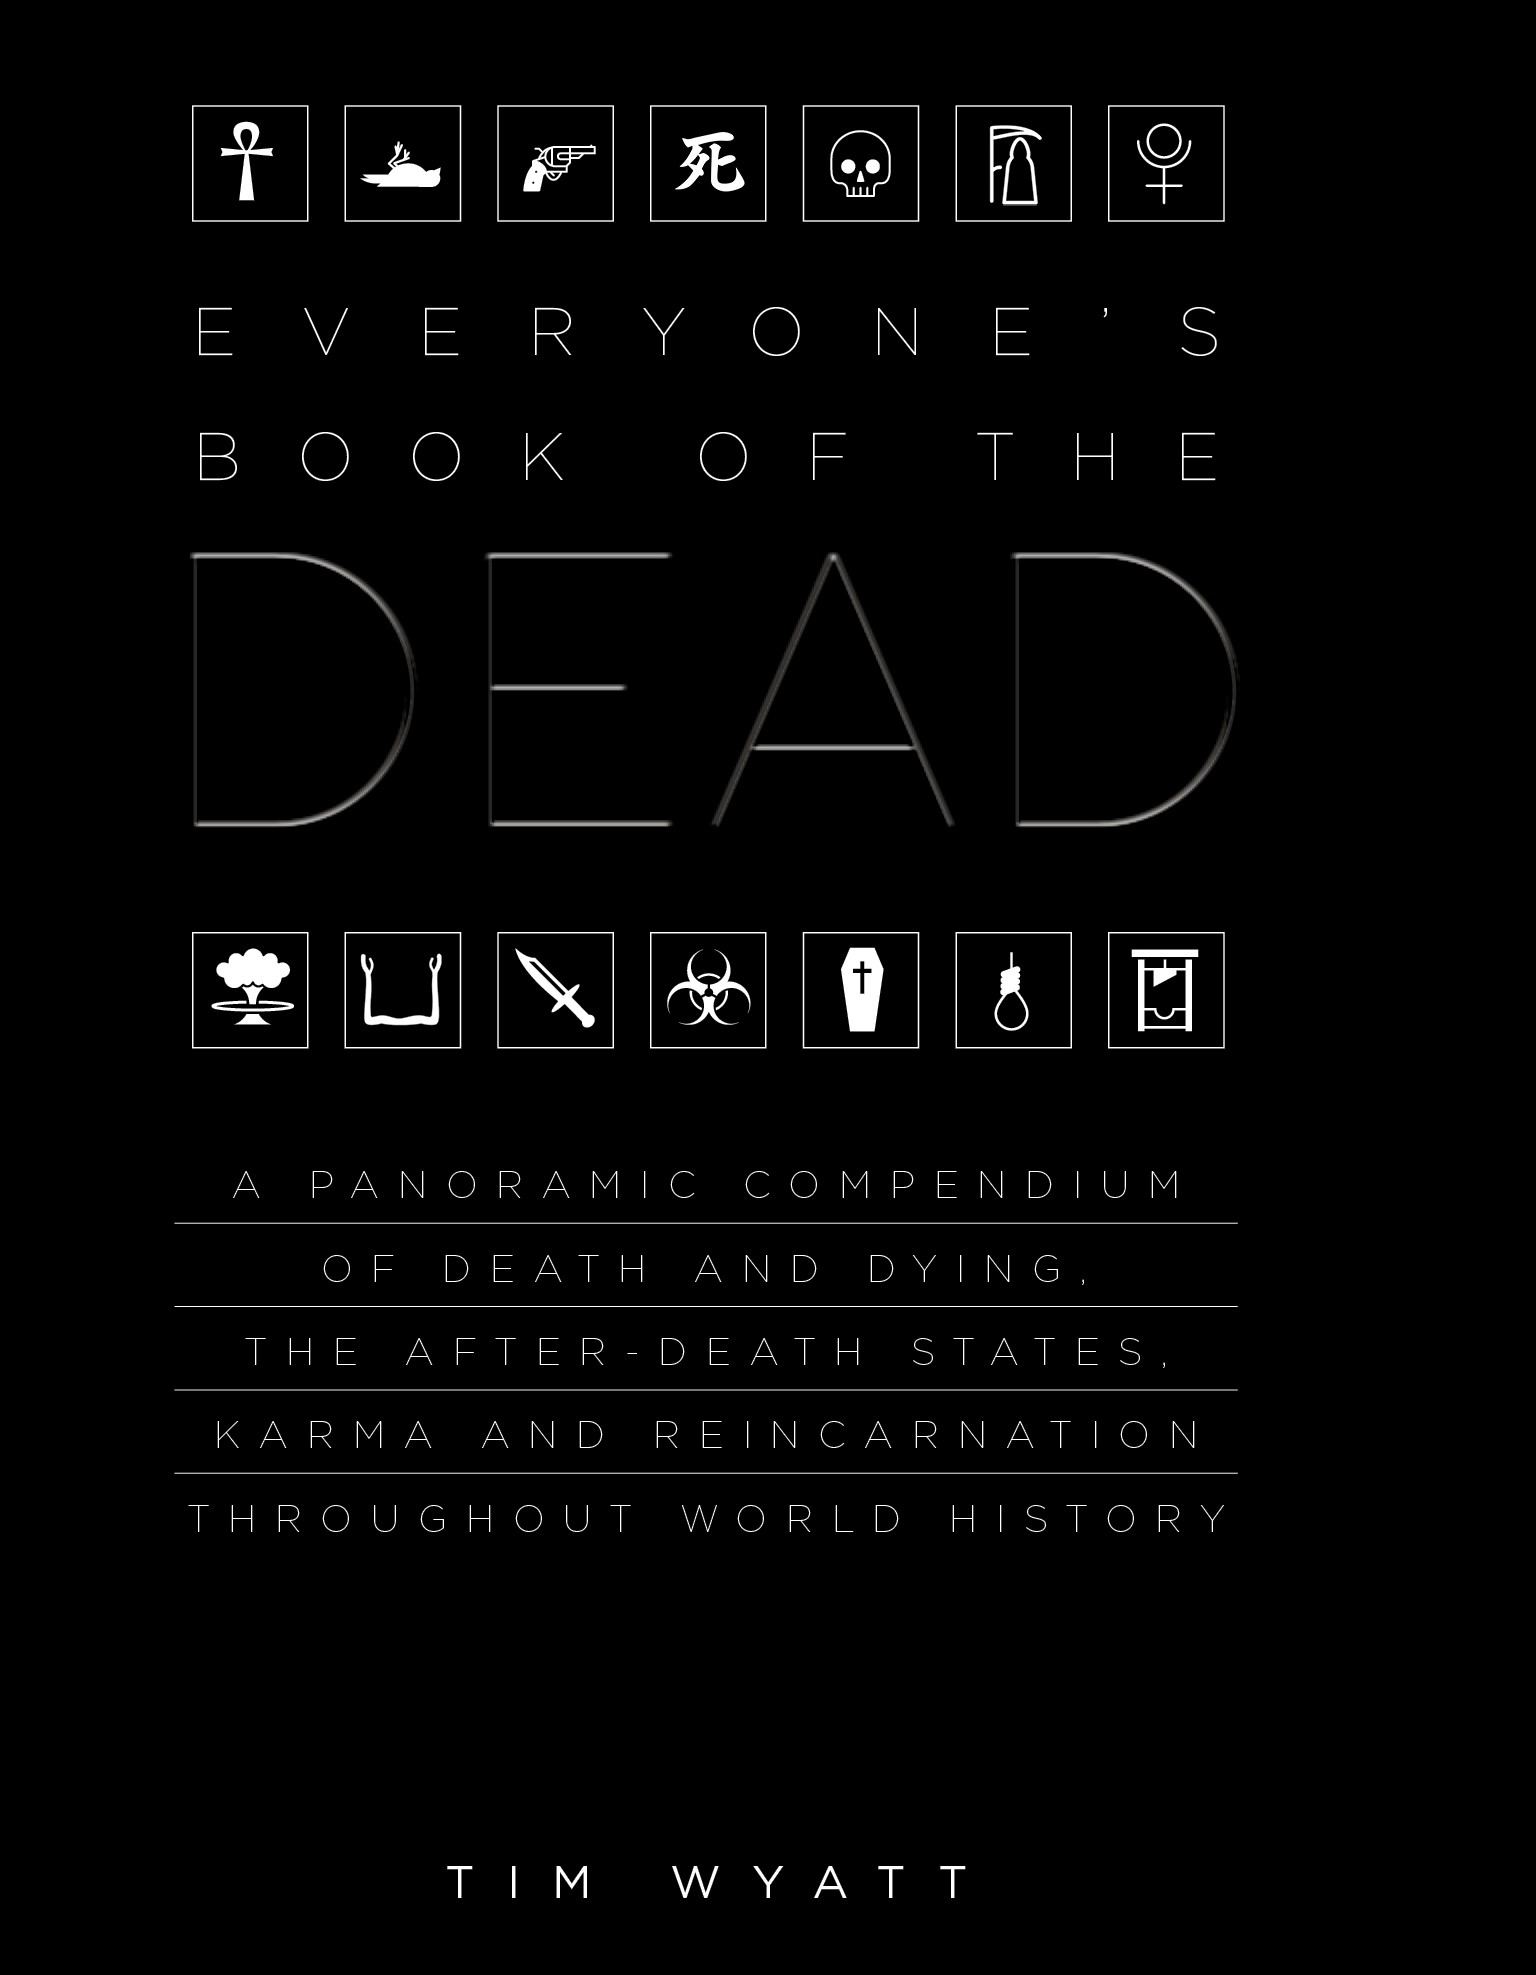 [Everyone's Book of the Dead]